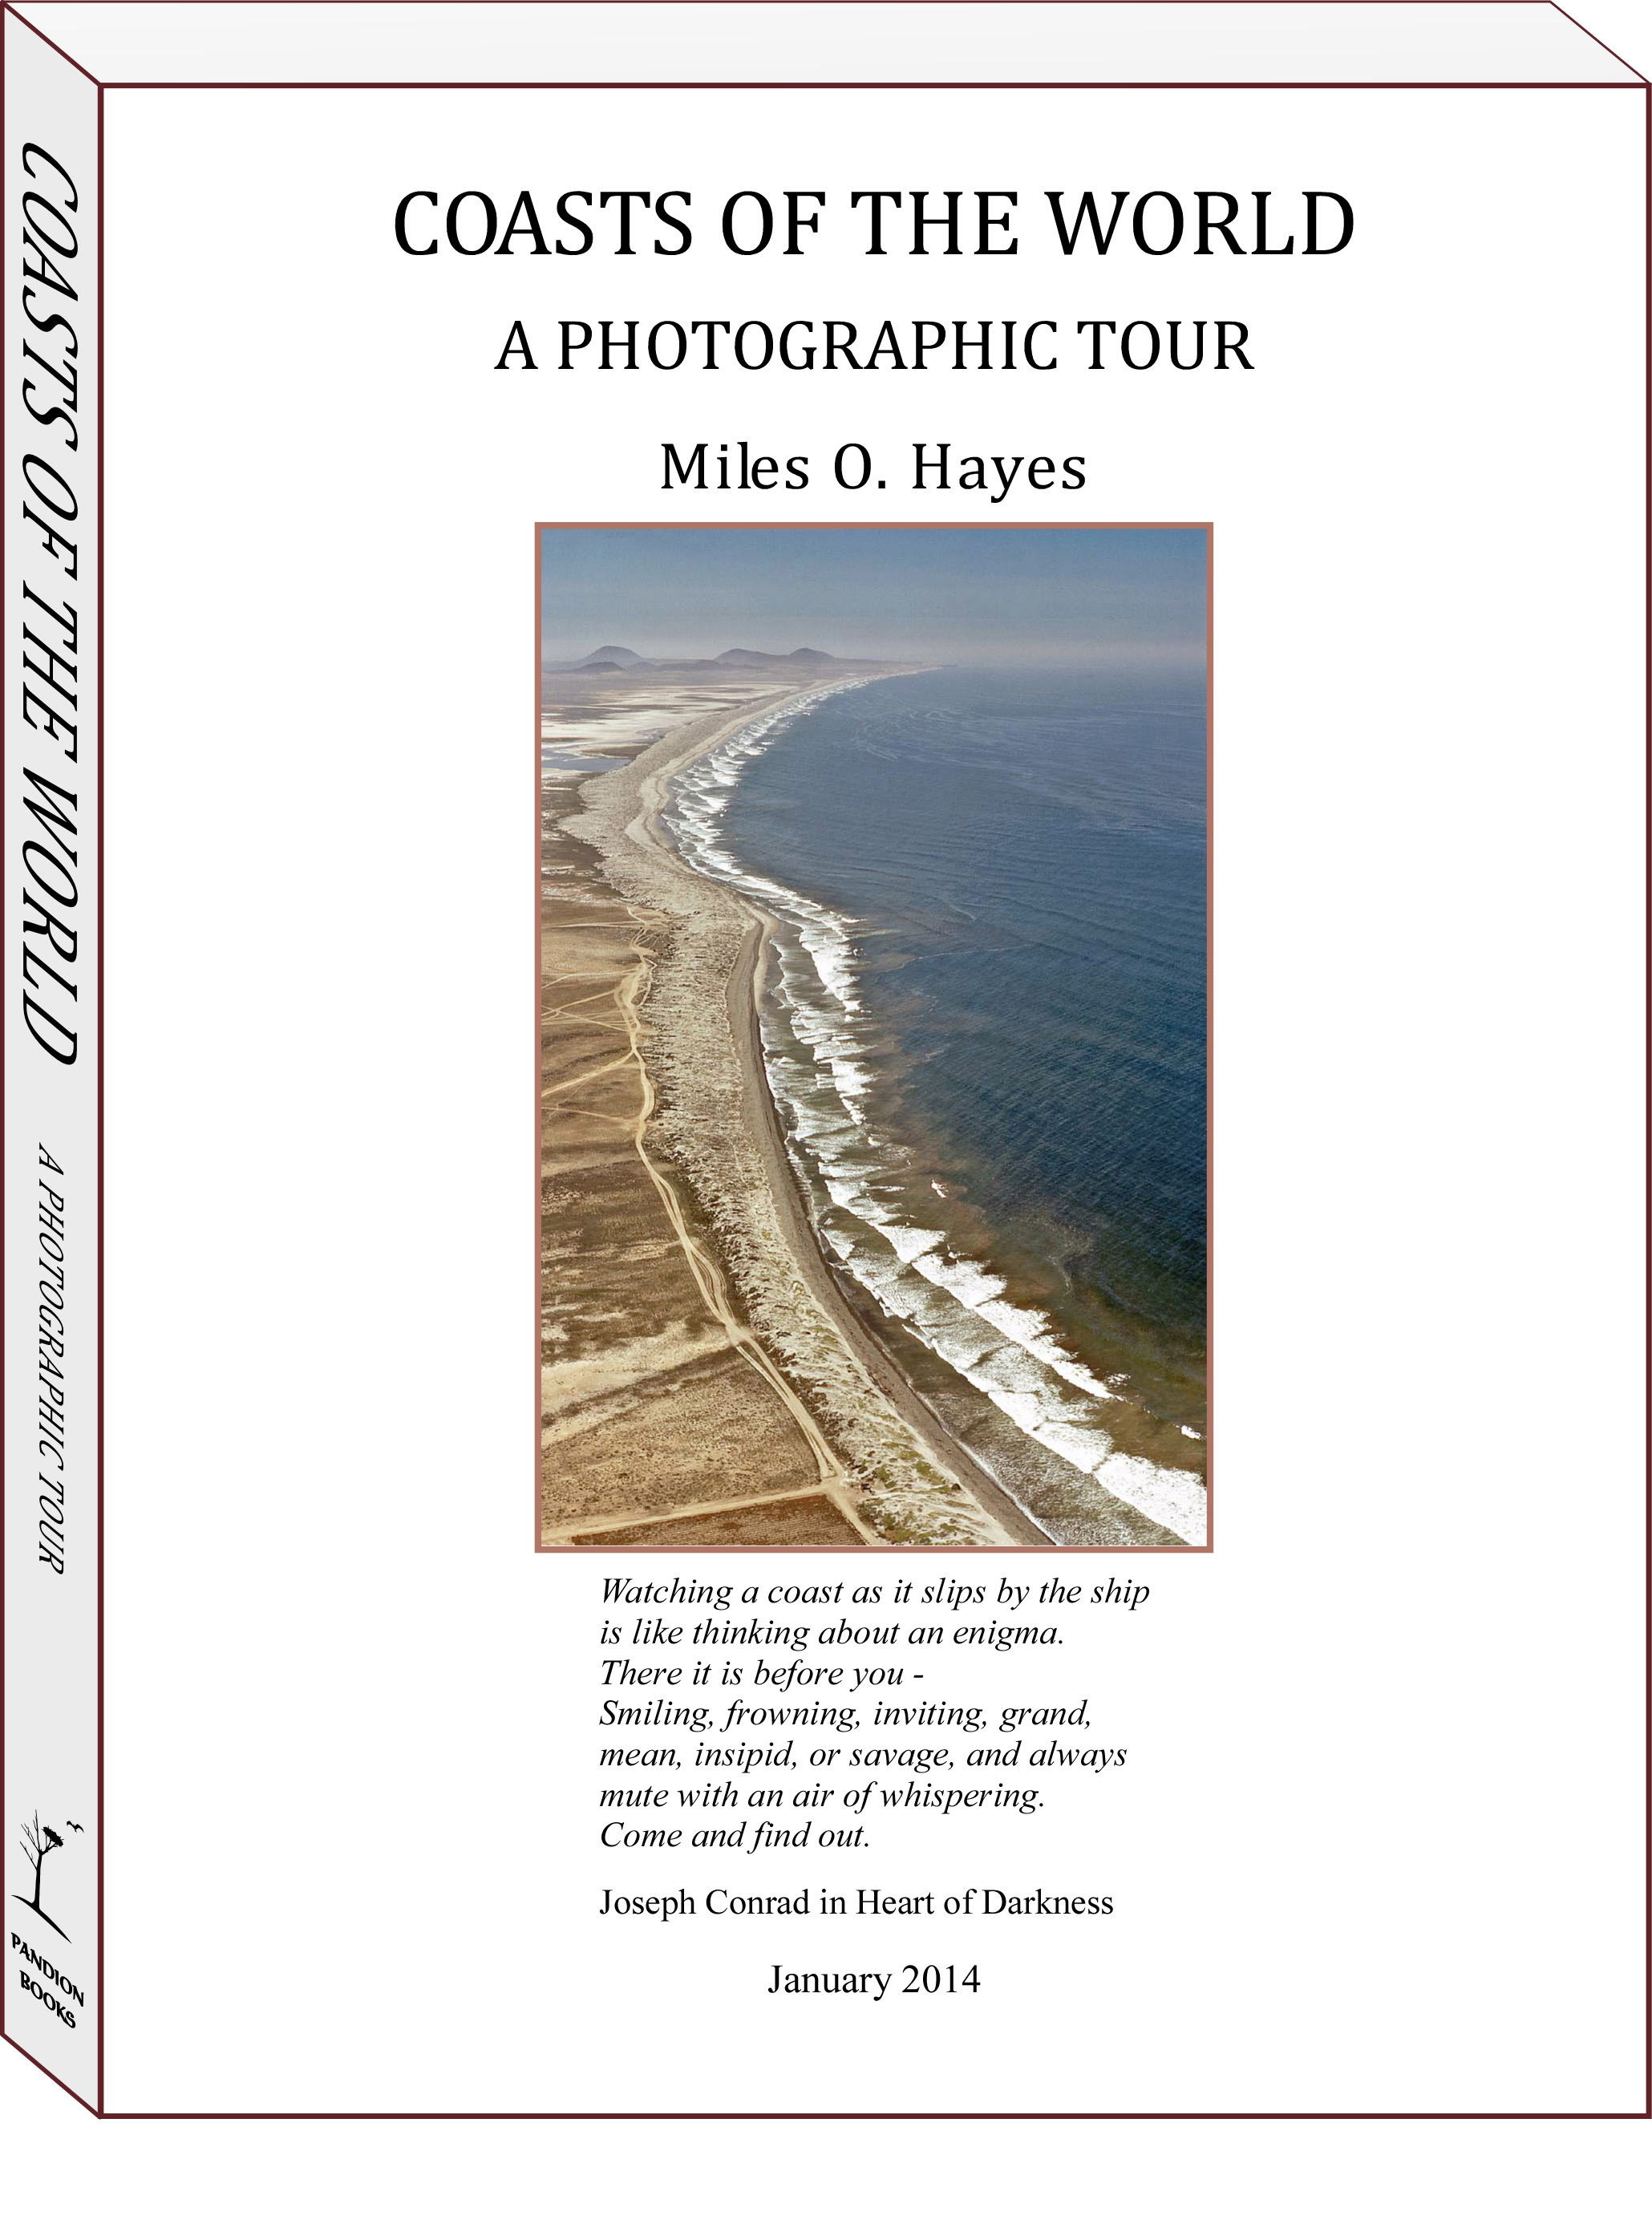 Coasts of the World - A Photographic Tour  (download here)